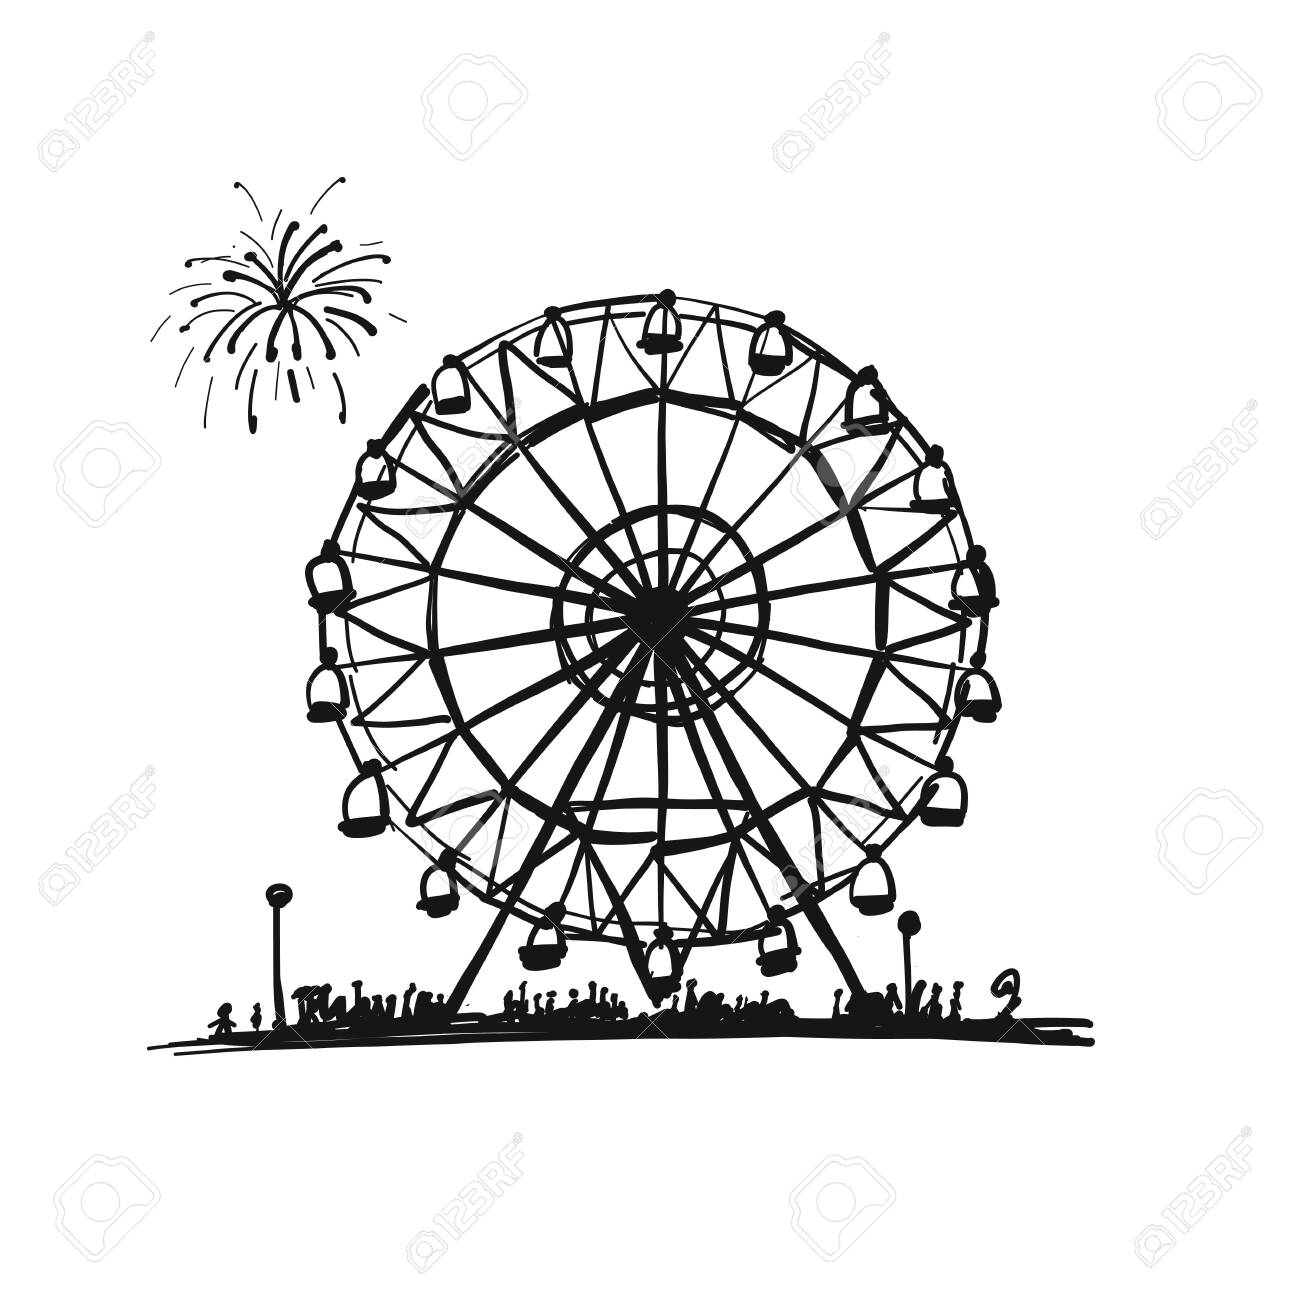 Ferris Wheel Sketch For Your Design Royalty Free Cliparts Vectors And Stock Illustration Image 136722328